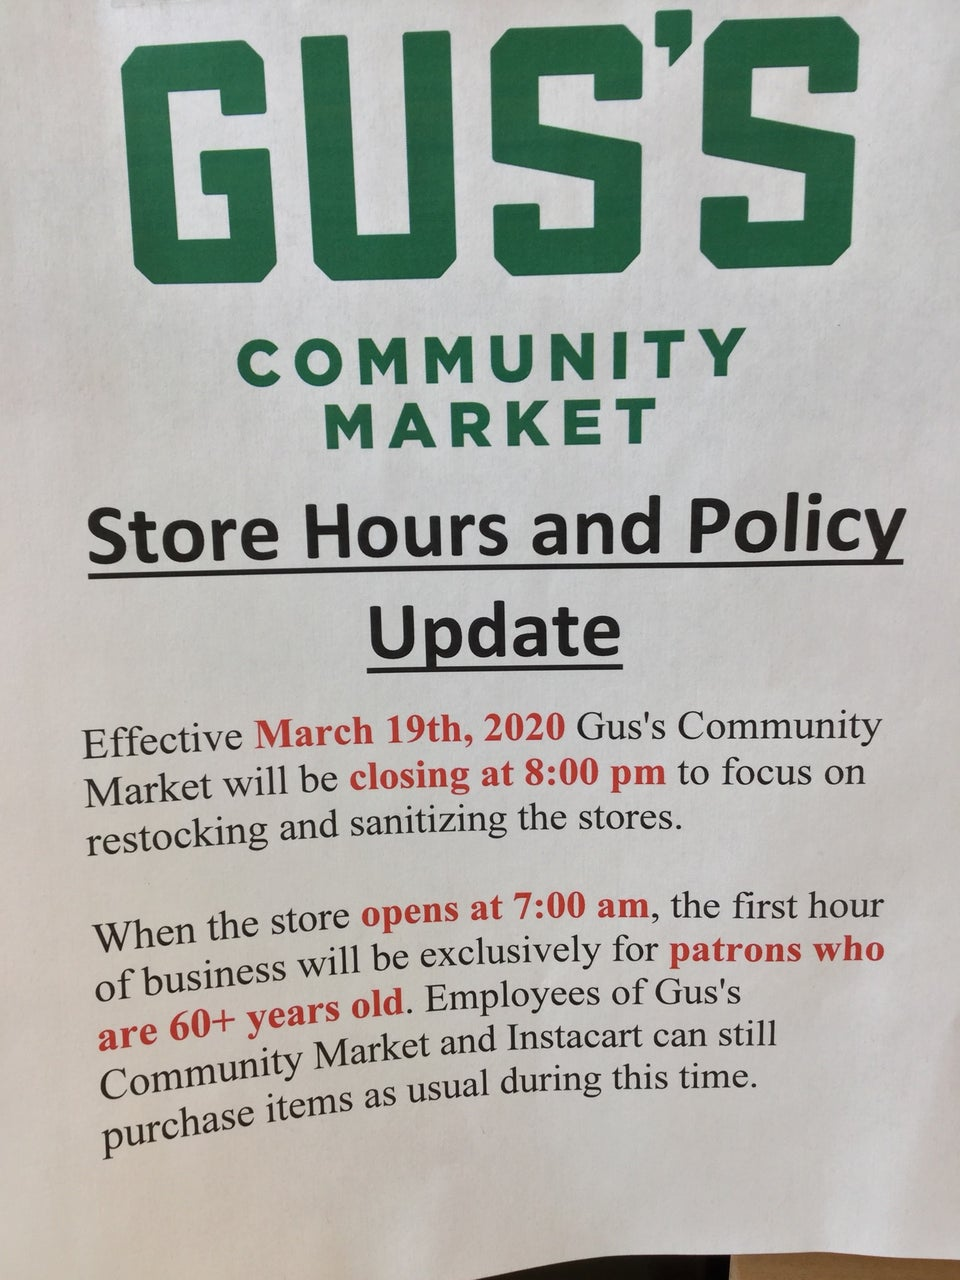 Sign at Gus's Community Market noting Store Hours and Policy Update effective March 19th, 2020, closing earlier at 8pm for sanitizing, and first hour at 7am exclusively for 60+ years old patrons, and Instacart.